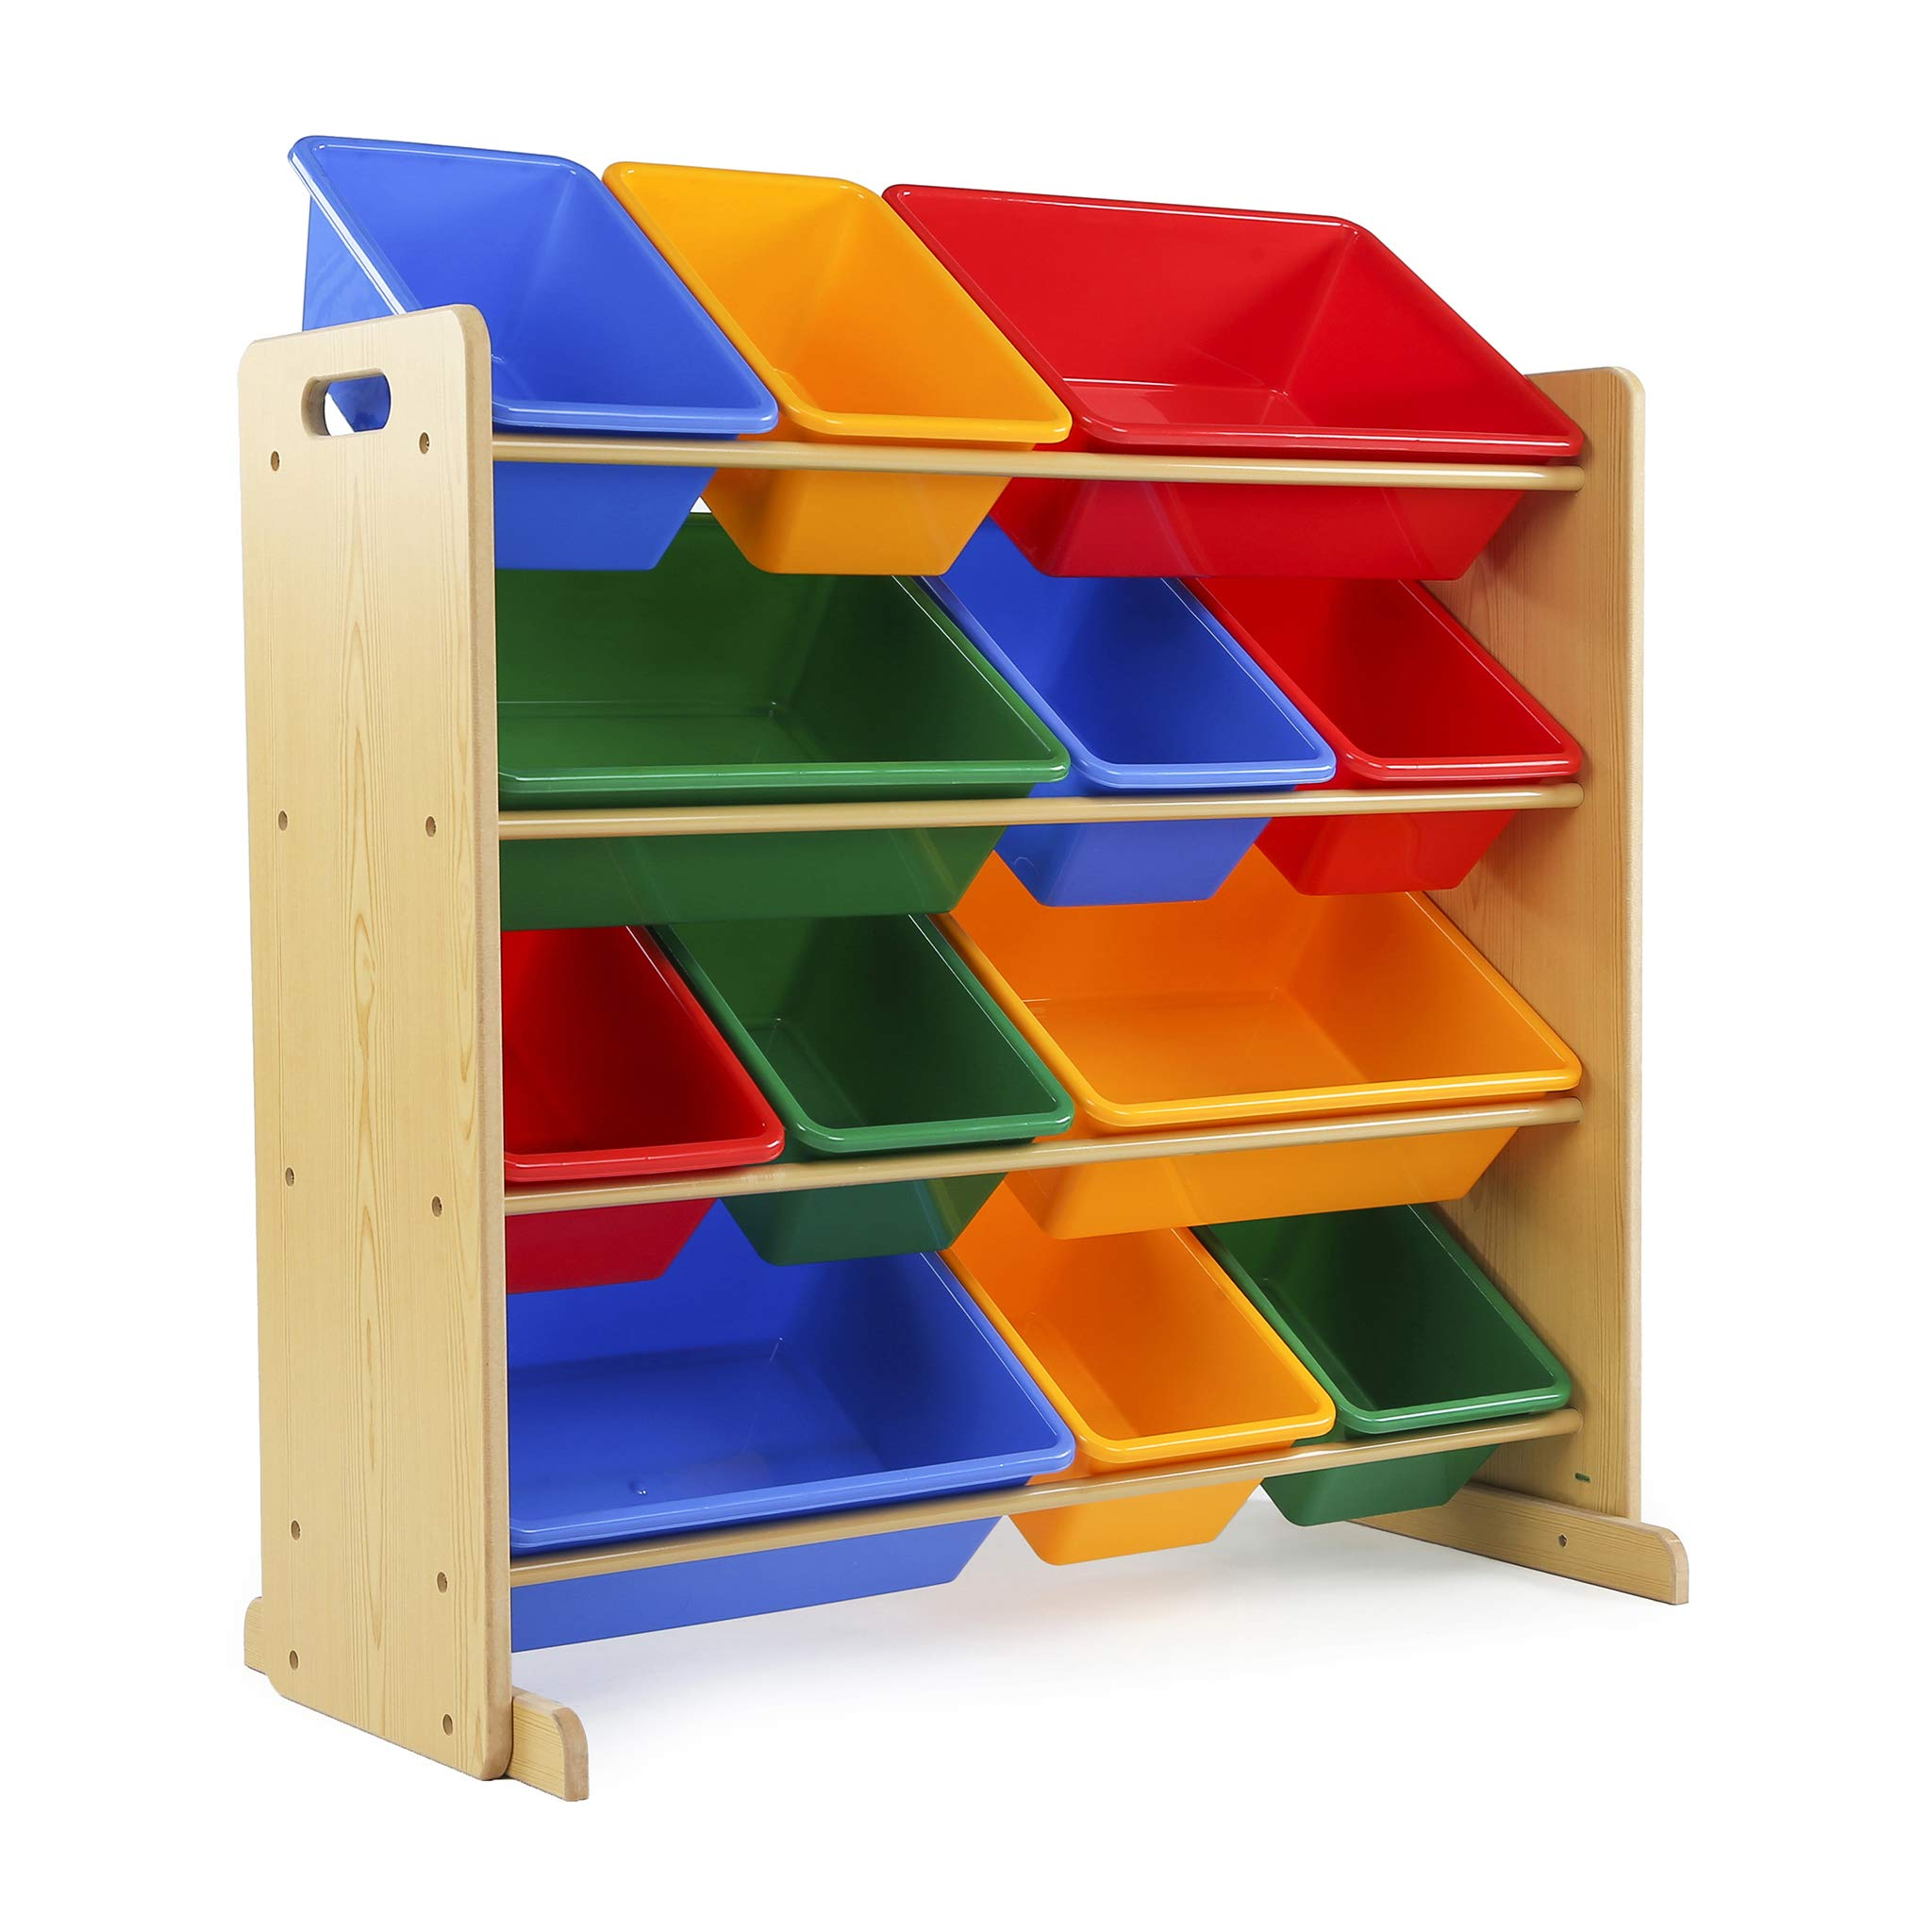 Tot Tutors Kids' Toy Storage Organizer with 12 Plastic Bins, Natural/Primary (Primary Collection) by Tot Tutors